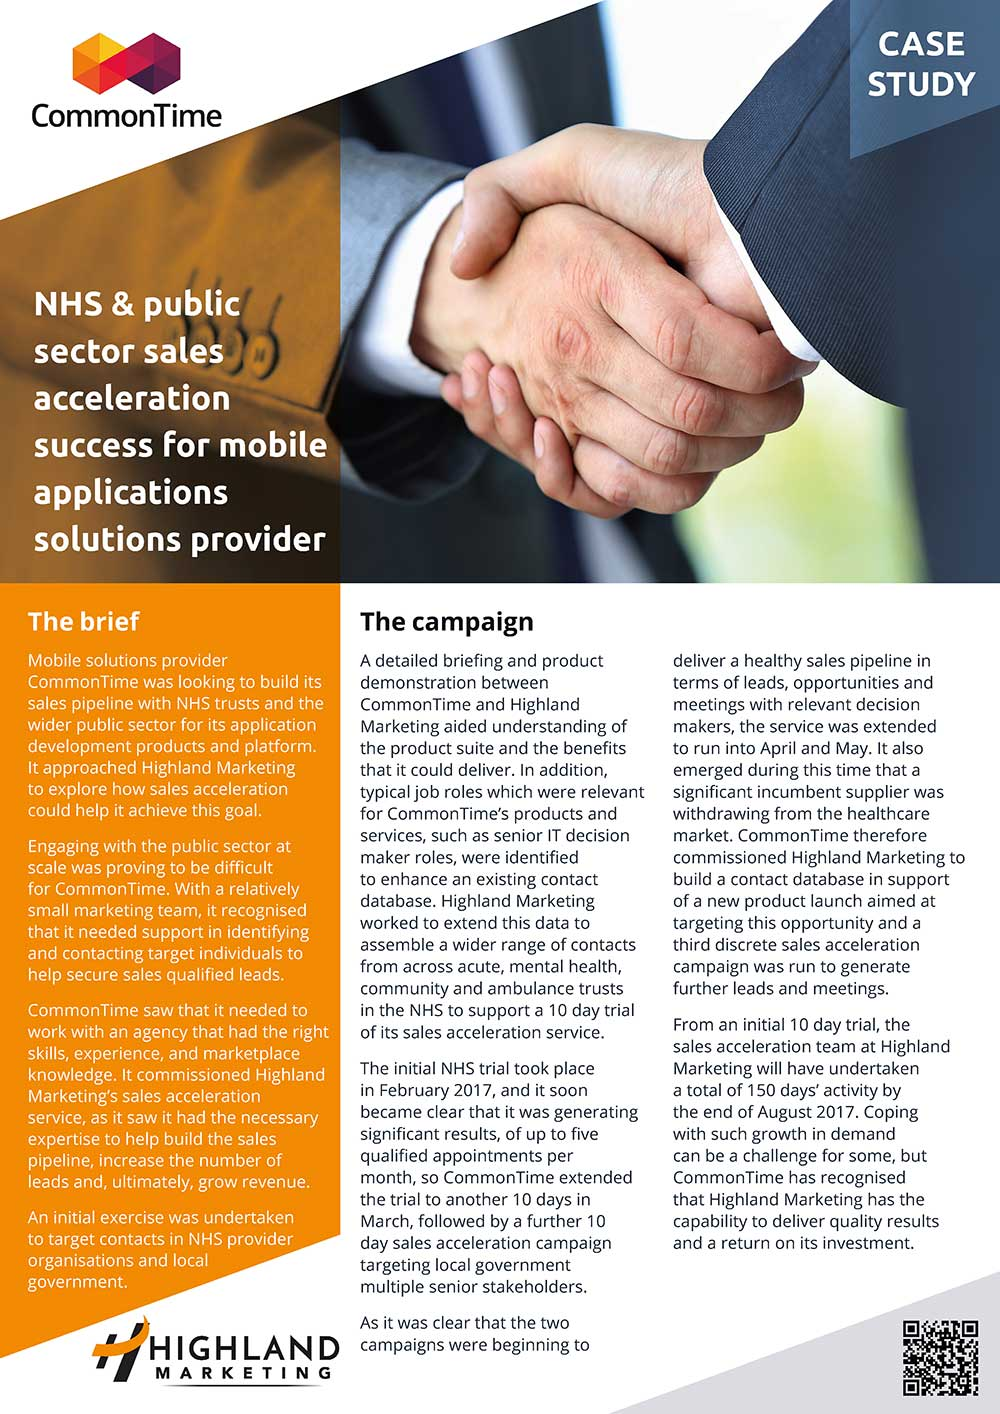 NHS & public sector sales acceleration success for mobile applications solutions provider